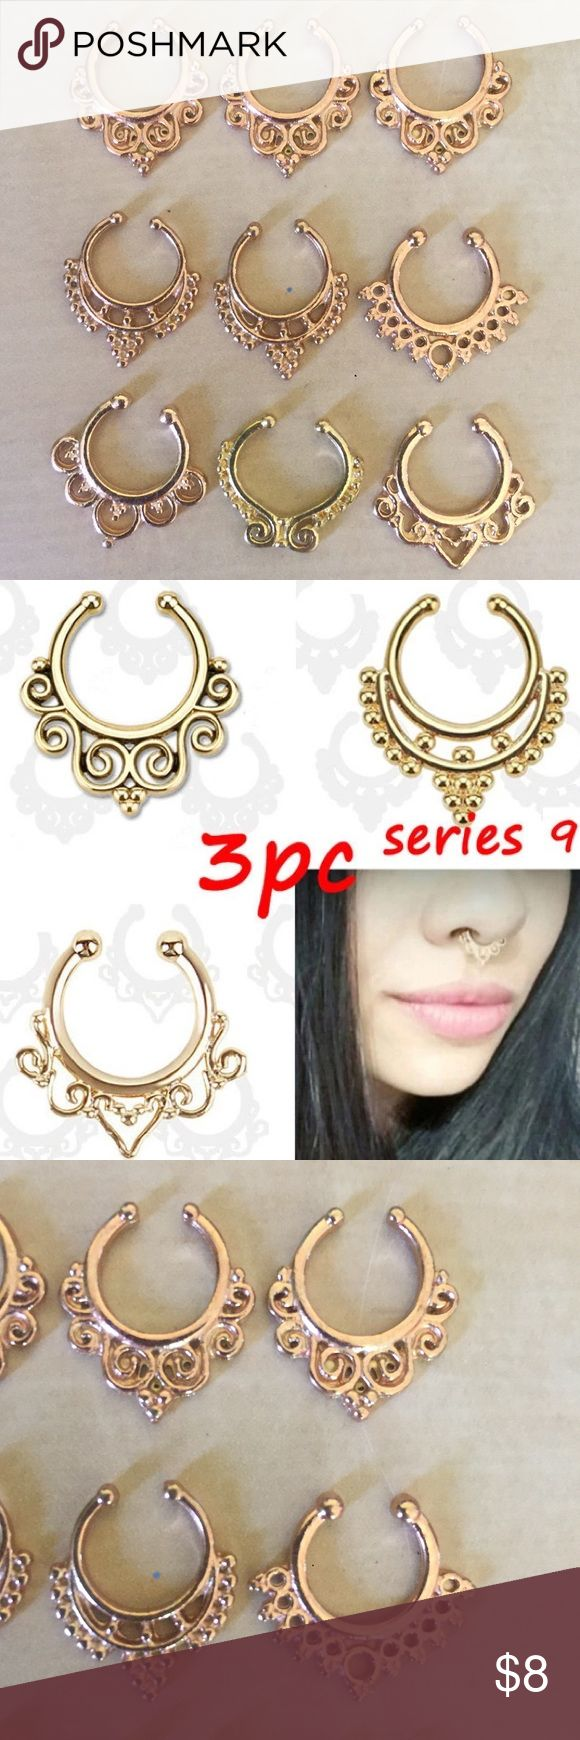 Septum Rings Gold Body Piercing Nose Ring Jewelry Set Of 9 Temporary Septum  Rings ! About